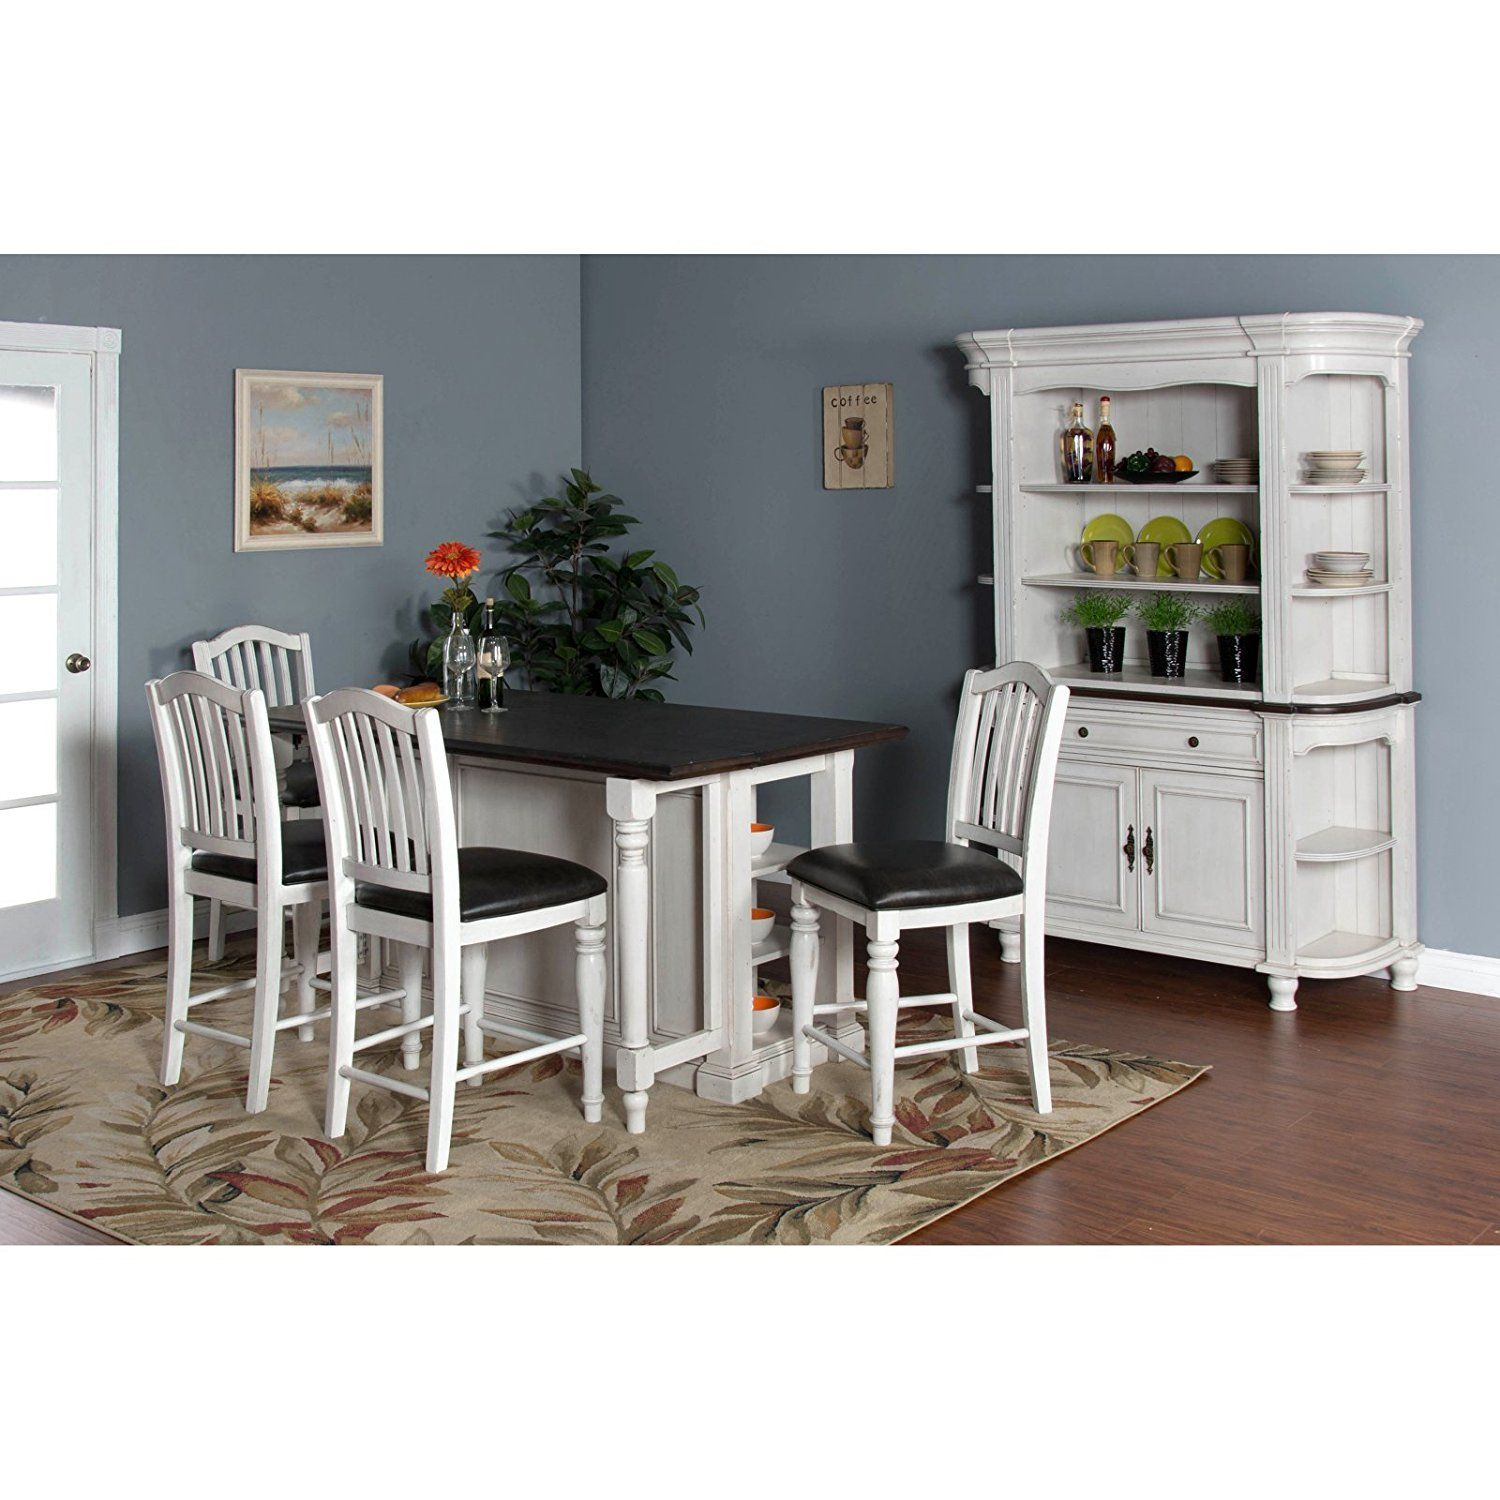 Sunny Designs Bourbon Country Kitchen Island In French We Are A Partint The Services Llc Ociates Program An Affiliate Advertising